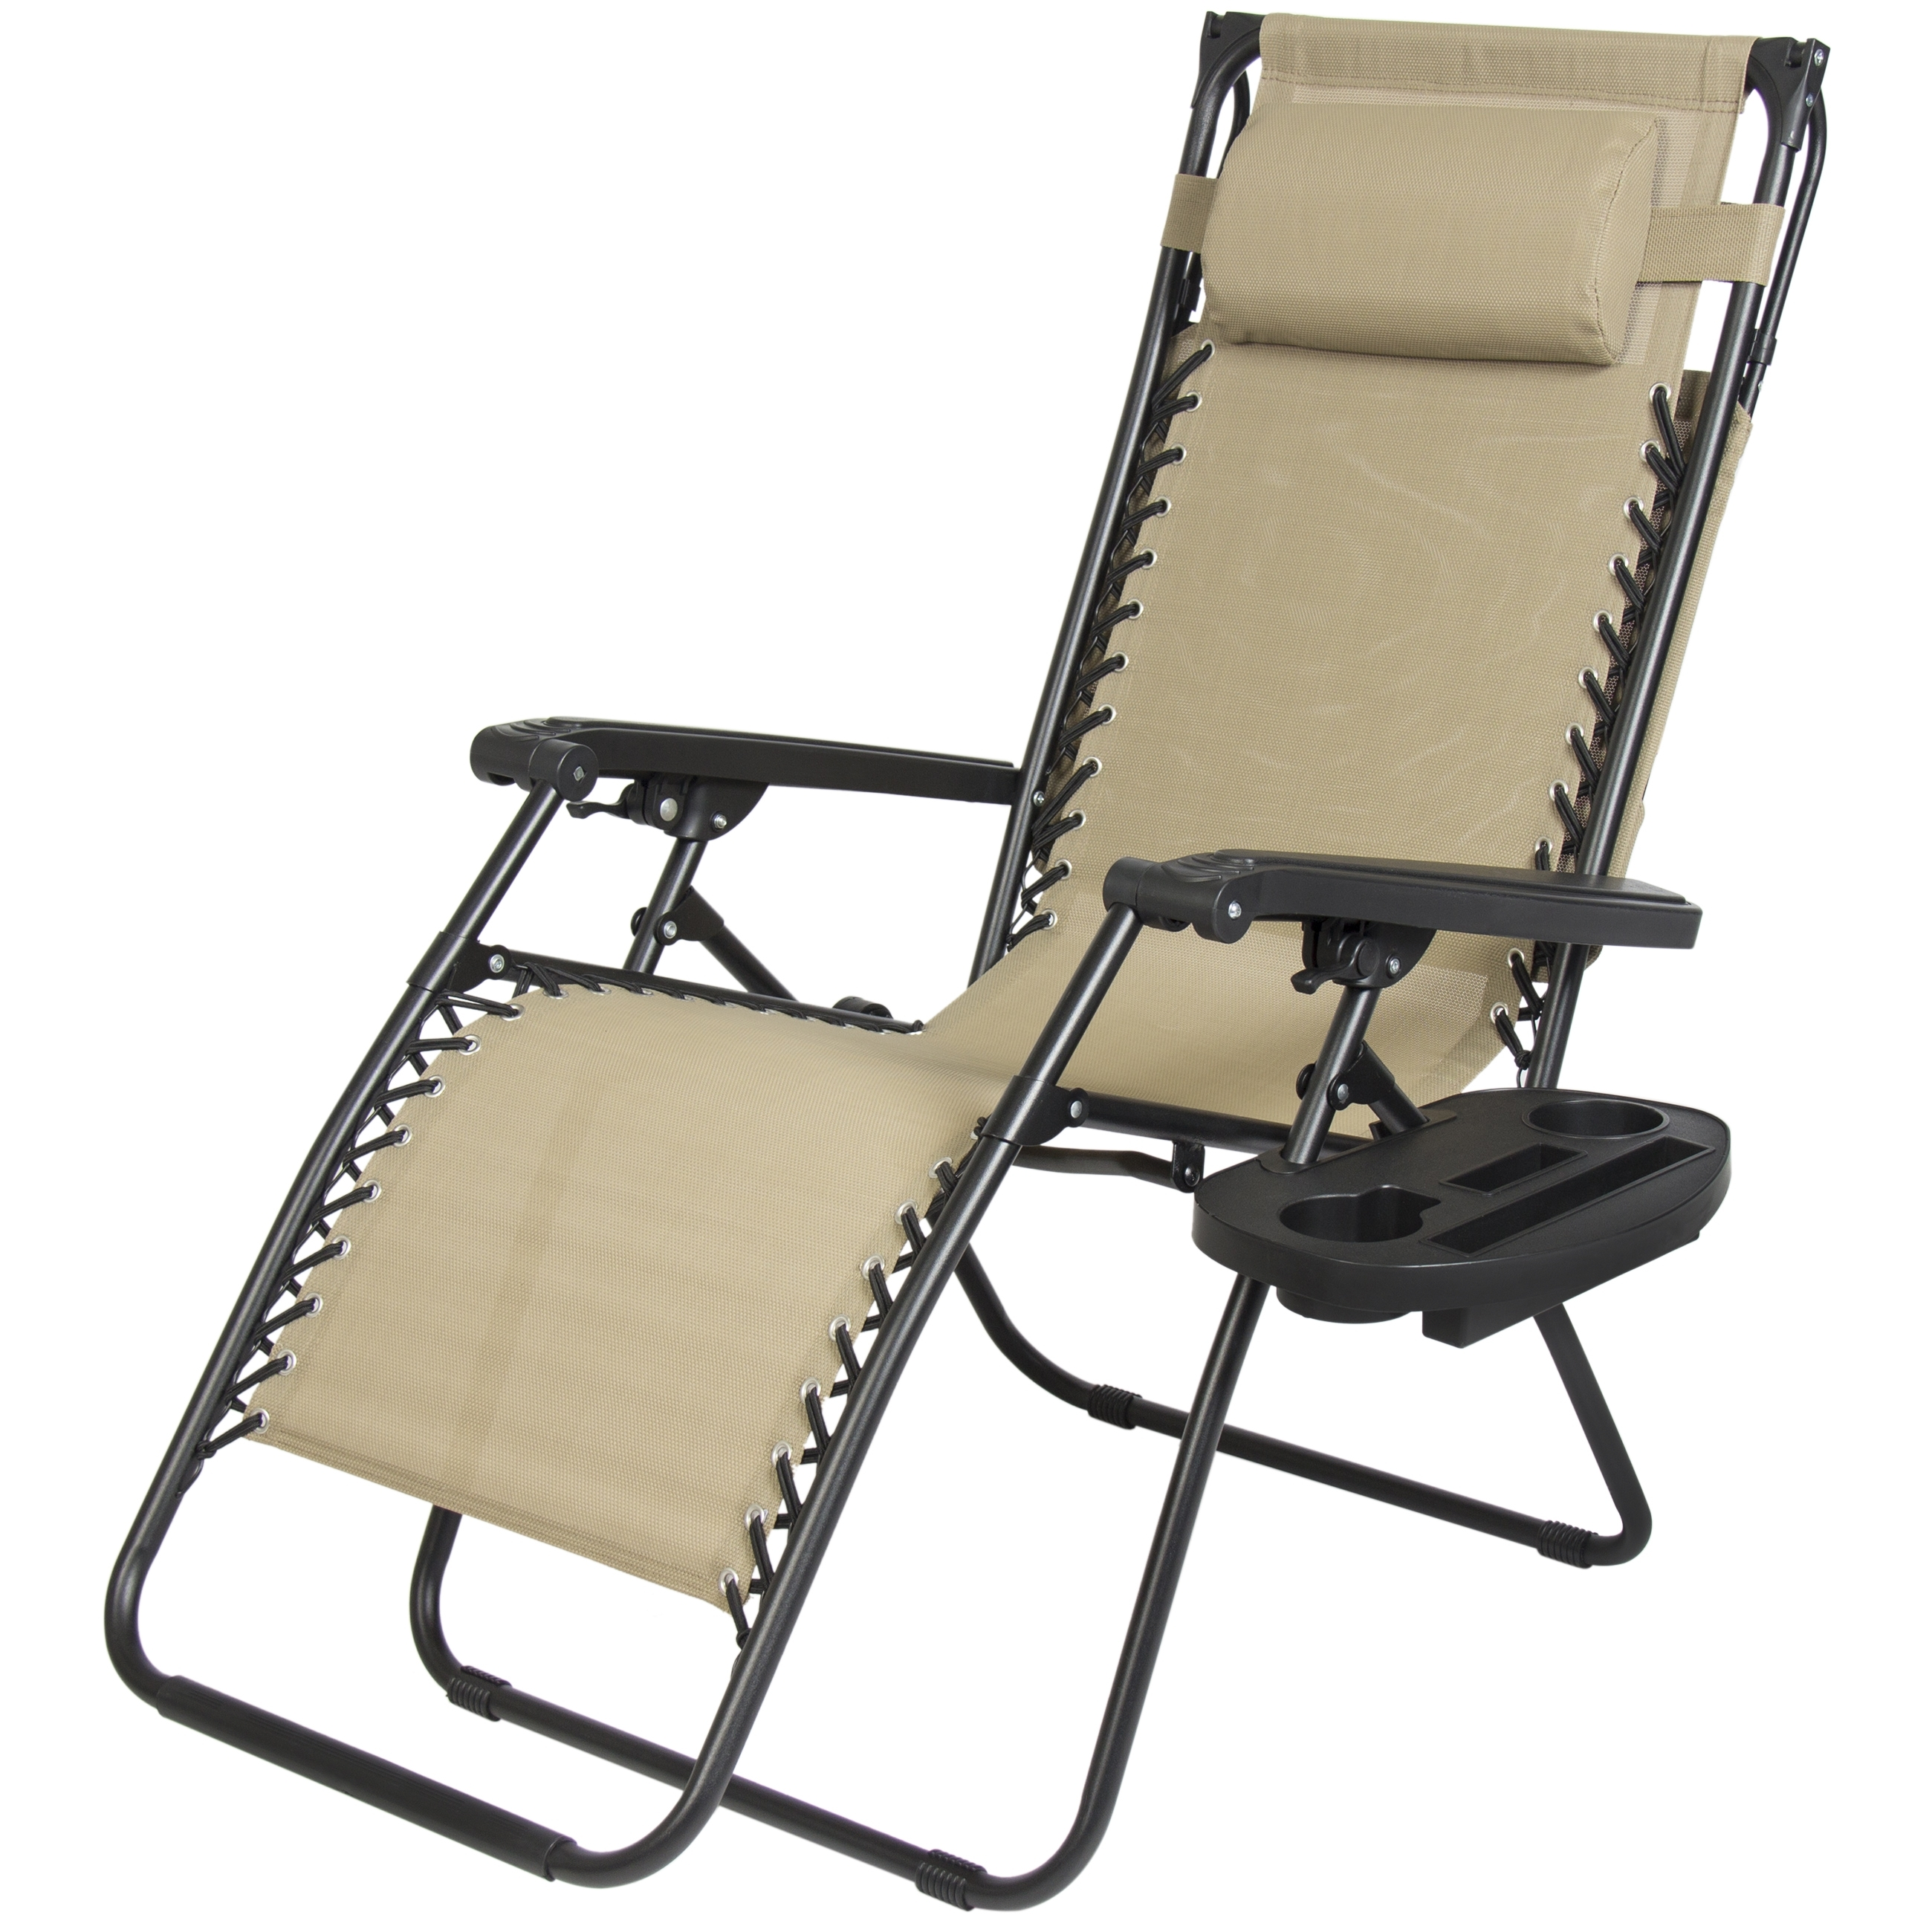 Well Known Zero Gravity Lounge Chairs With Canopy • Lounge Chairs Ideas With Zero Gravity Chaise Lounges (View 8 of 15)